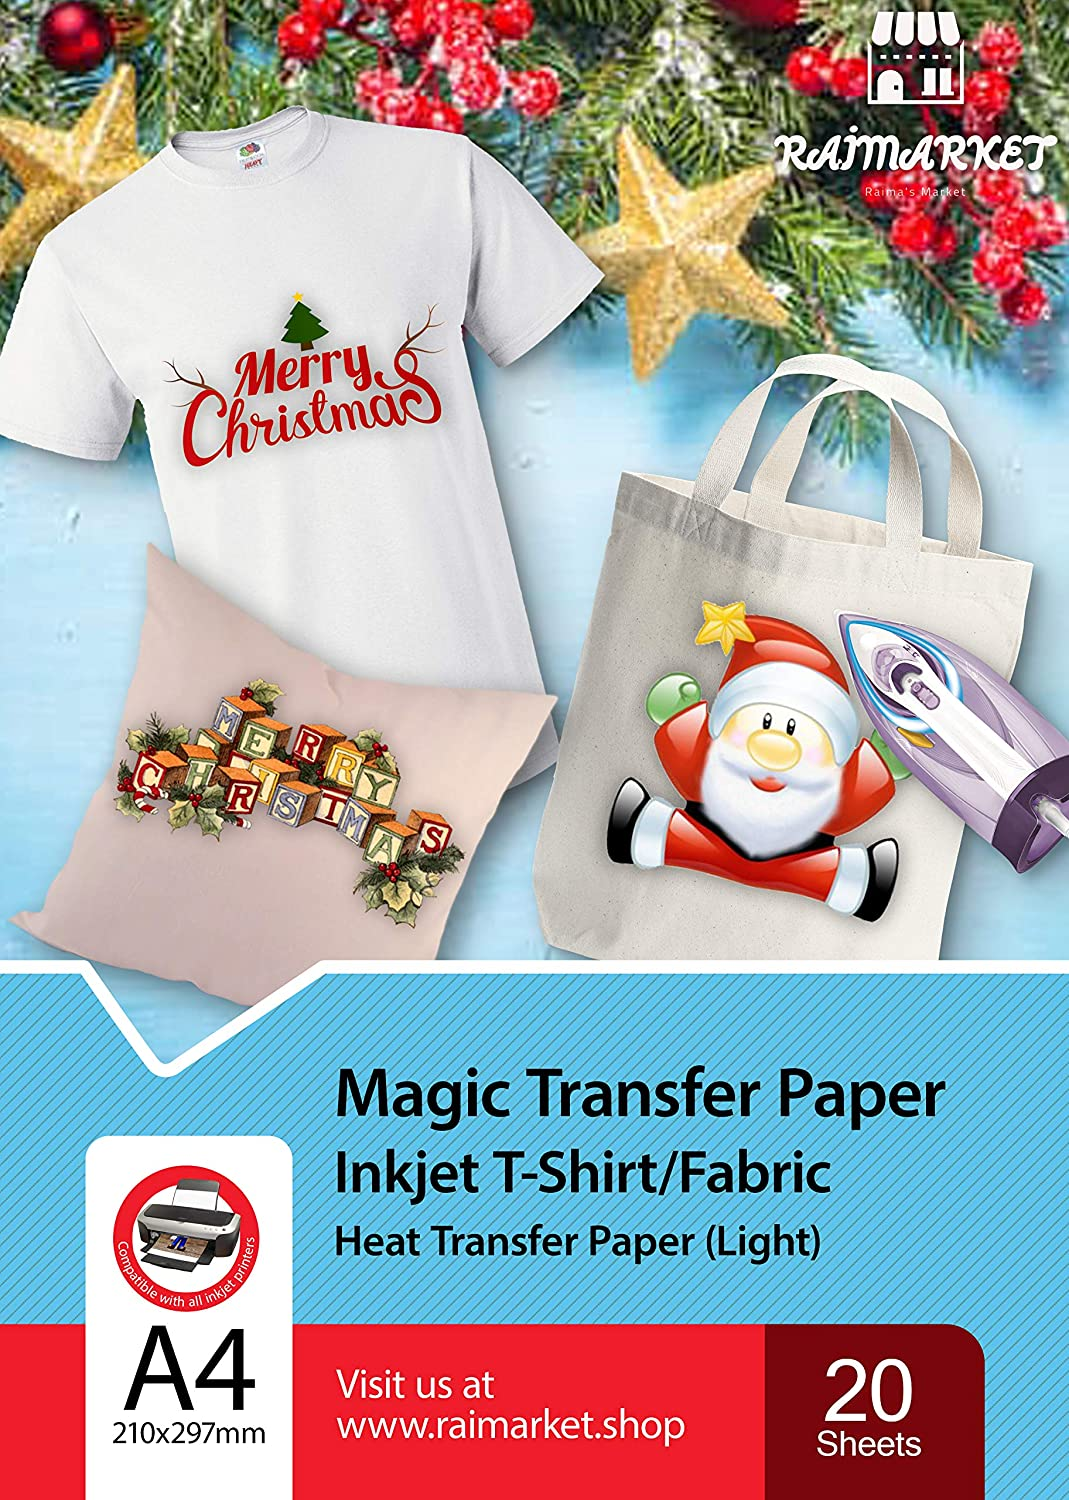 Raimarket Premium Iron on Heat Transfer Paper for Light or White Fabric | 20 Printable Sheets | 8.5 x 11 inch | DIY Thermal T shirt Transfers